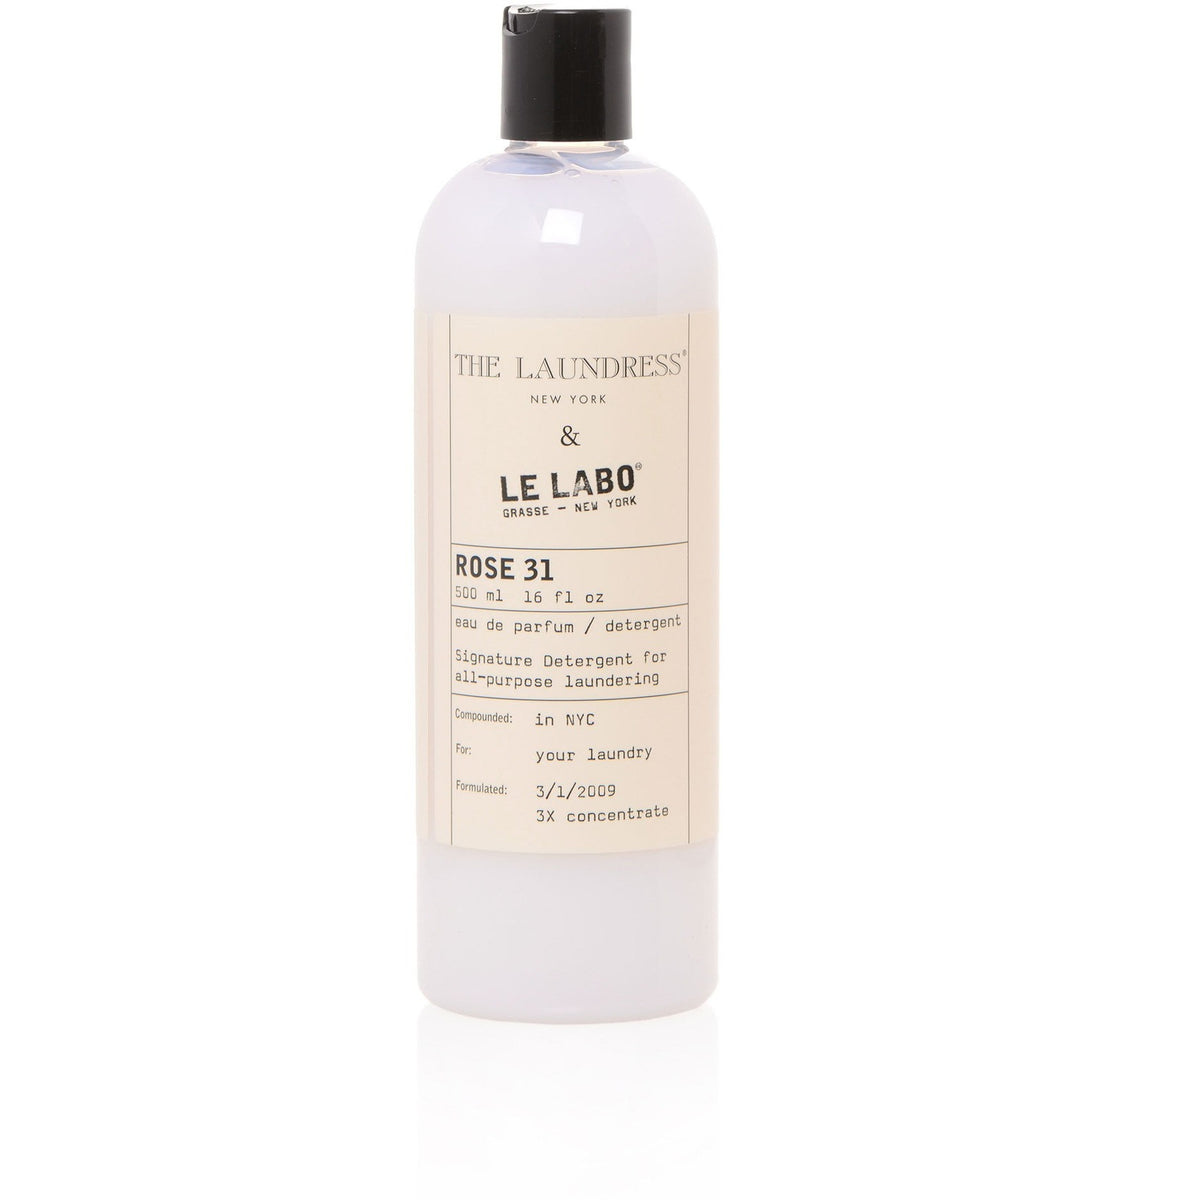 the laundress | le labo rose 31, signature detergent - KISS AND MAKEUP